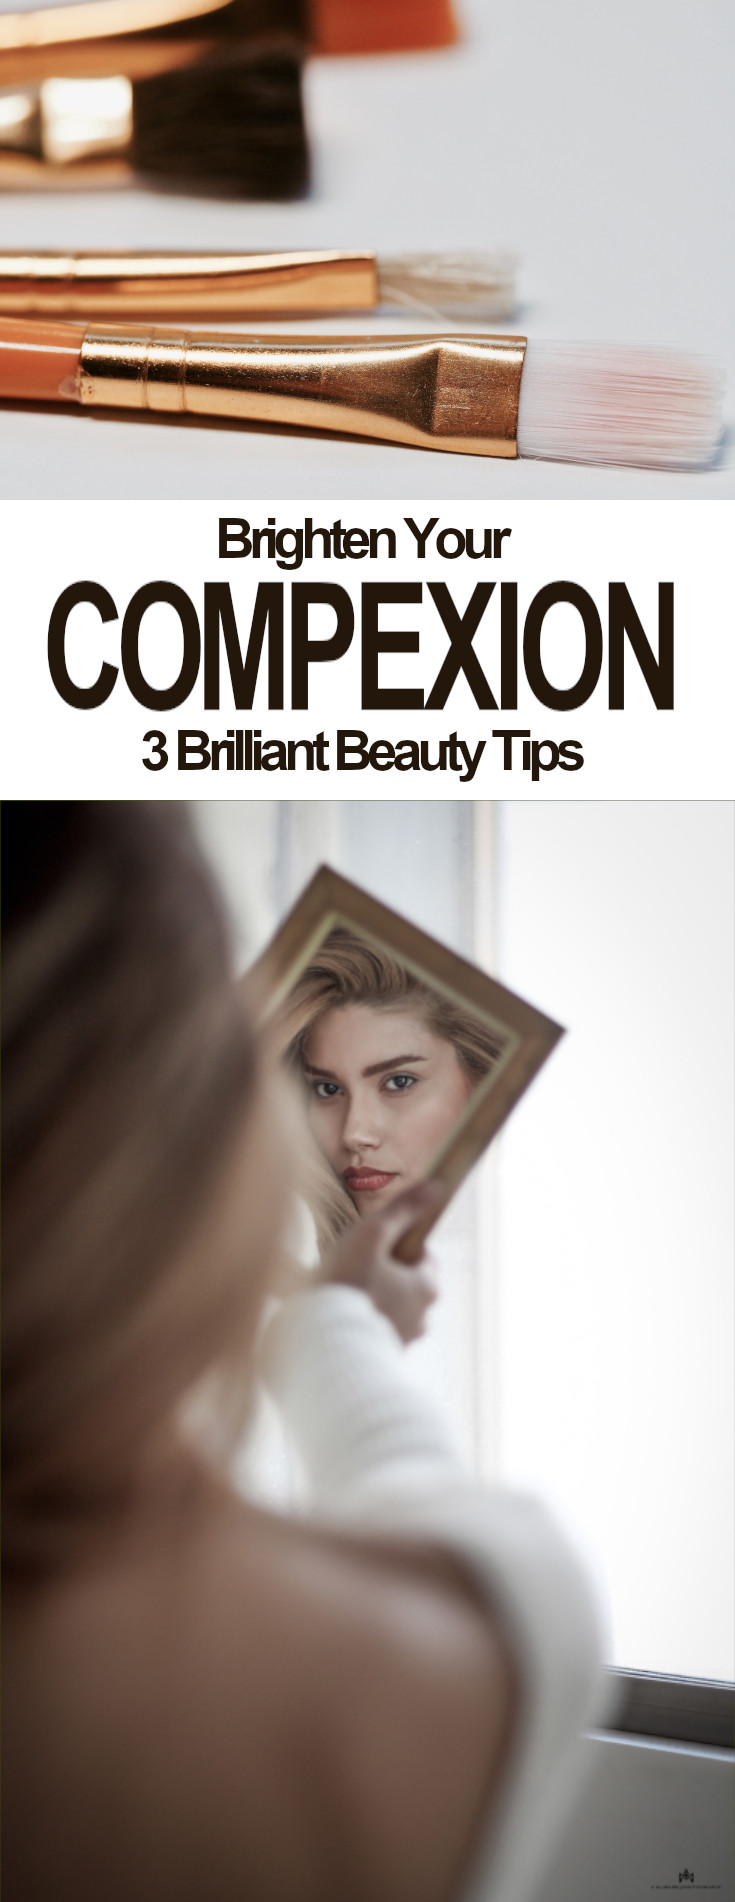 Brighten your complexionwith these three personally tested methods, each one will leave your skin looking and feeling incredible. I've fallen in love with them and I'm sure you will too.